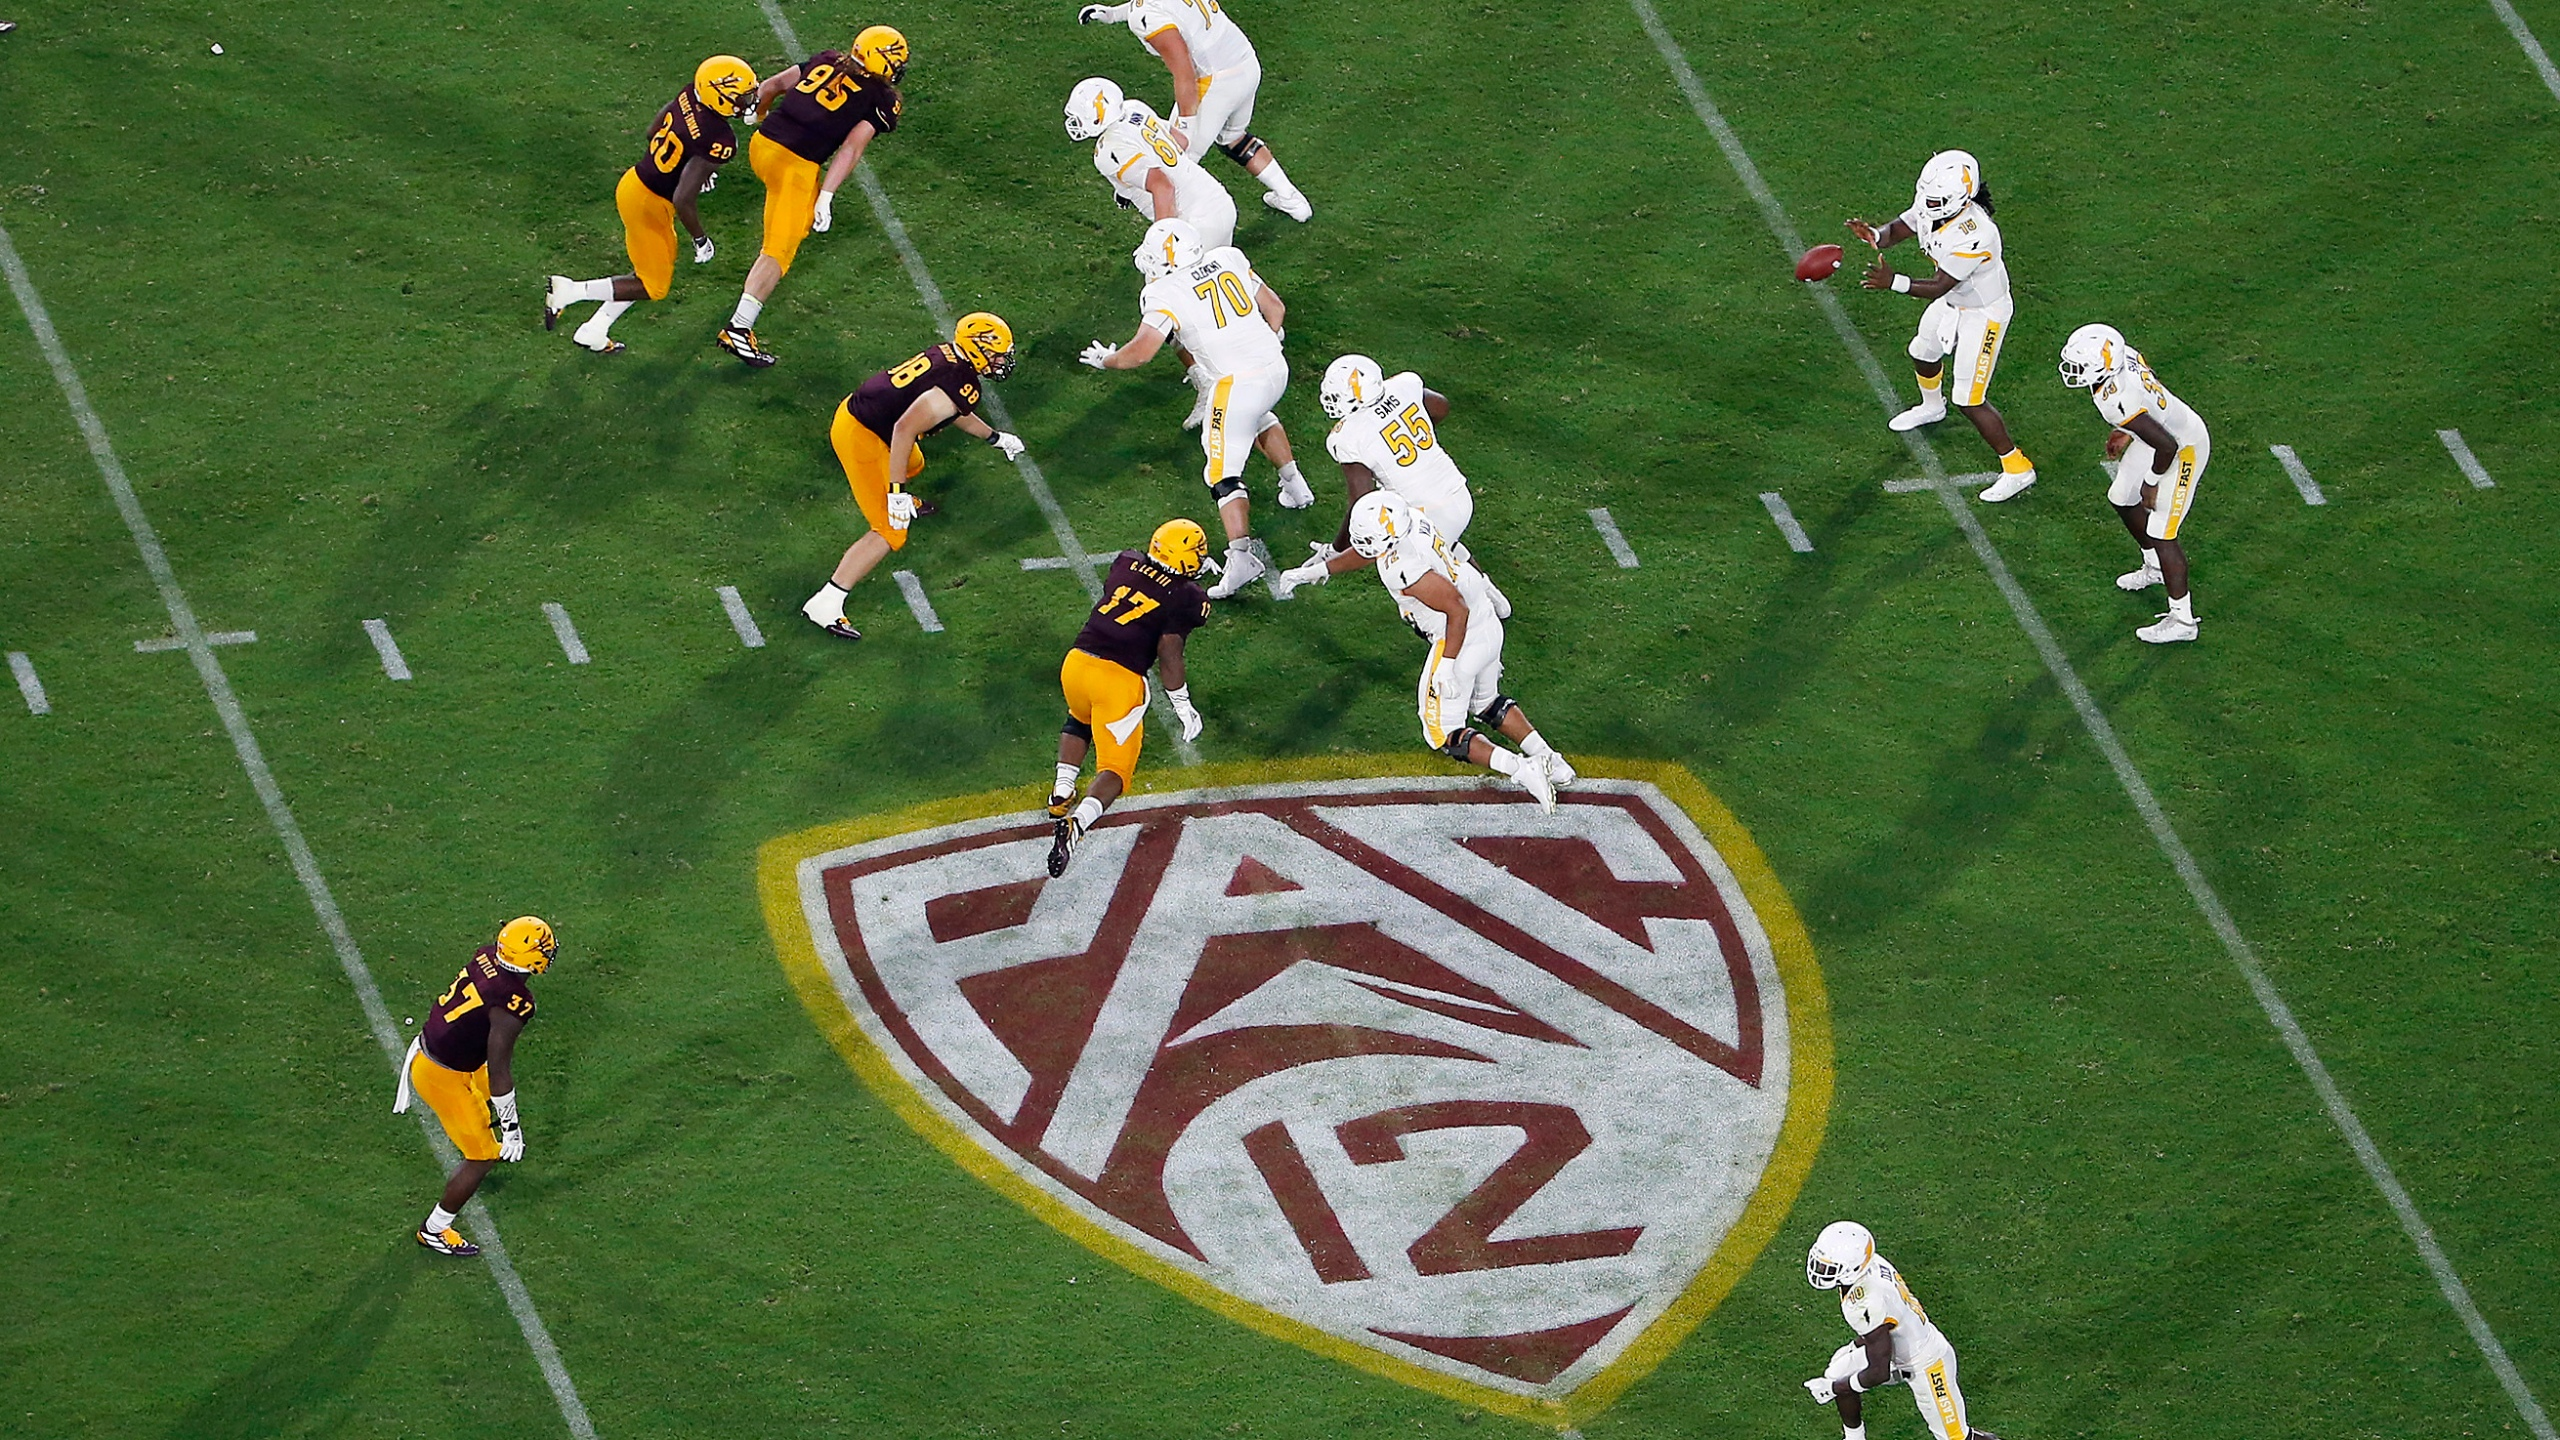 This Thursday, Aug. 29, 2019, file photo, shows the Pac-12 logo during the second half of an NCAA college football game between Arizona State and Kent State, in Tempe, Arizona. (AP Photo/Ralph Freso, File)